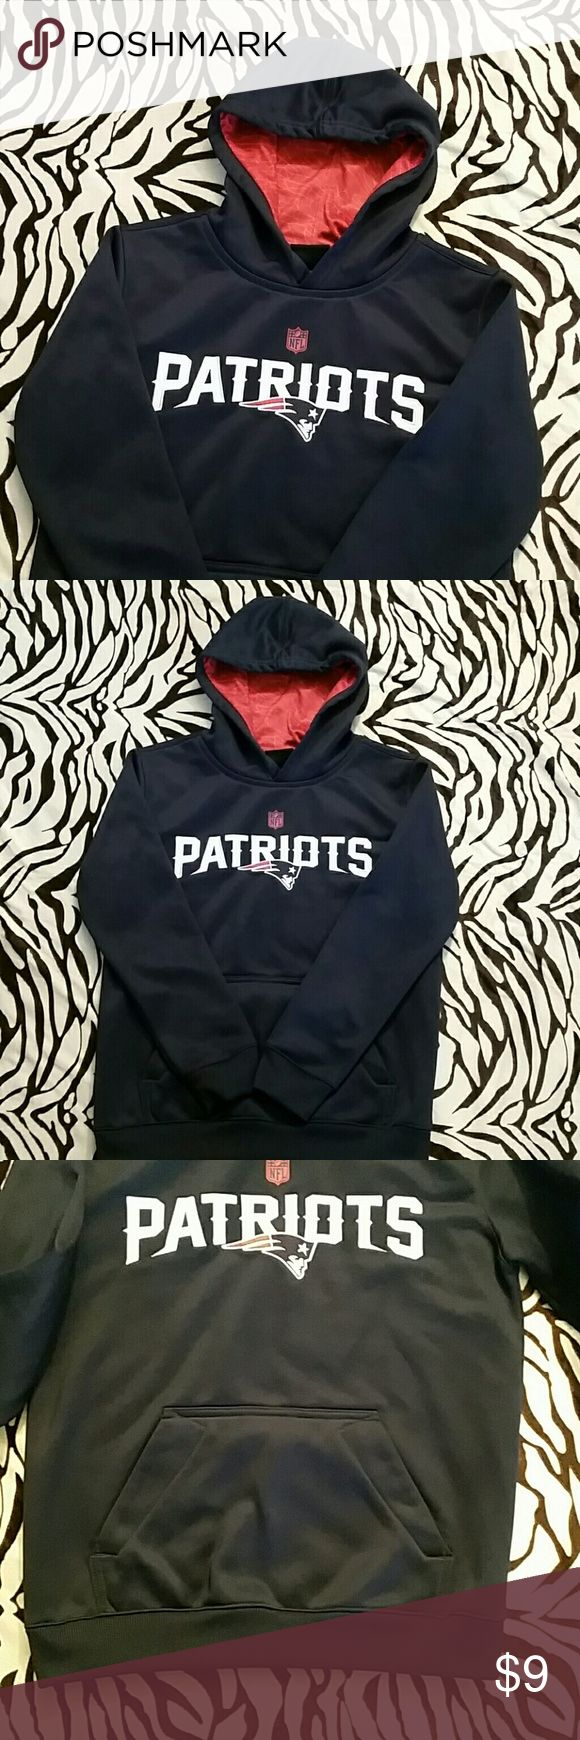 Boys NFL Patriots Hoodie NFL New England Patriots football Hoodie for boys. Some wear on it but overall good condition for the Patriot fans. NFL Team Apparel Shirts & Tops Sweatshirts & Hoodies